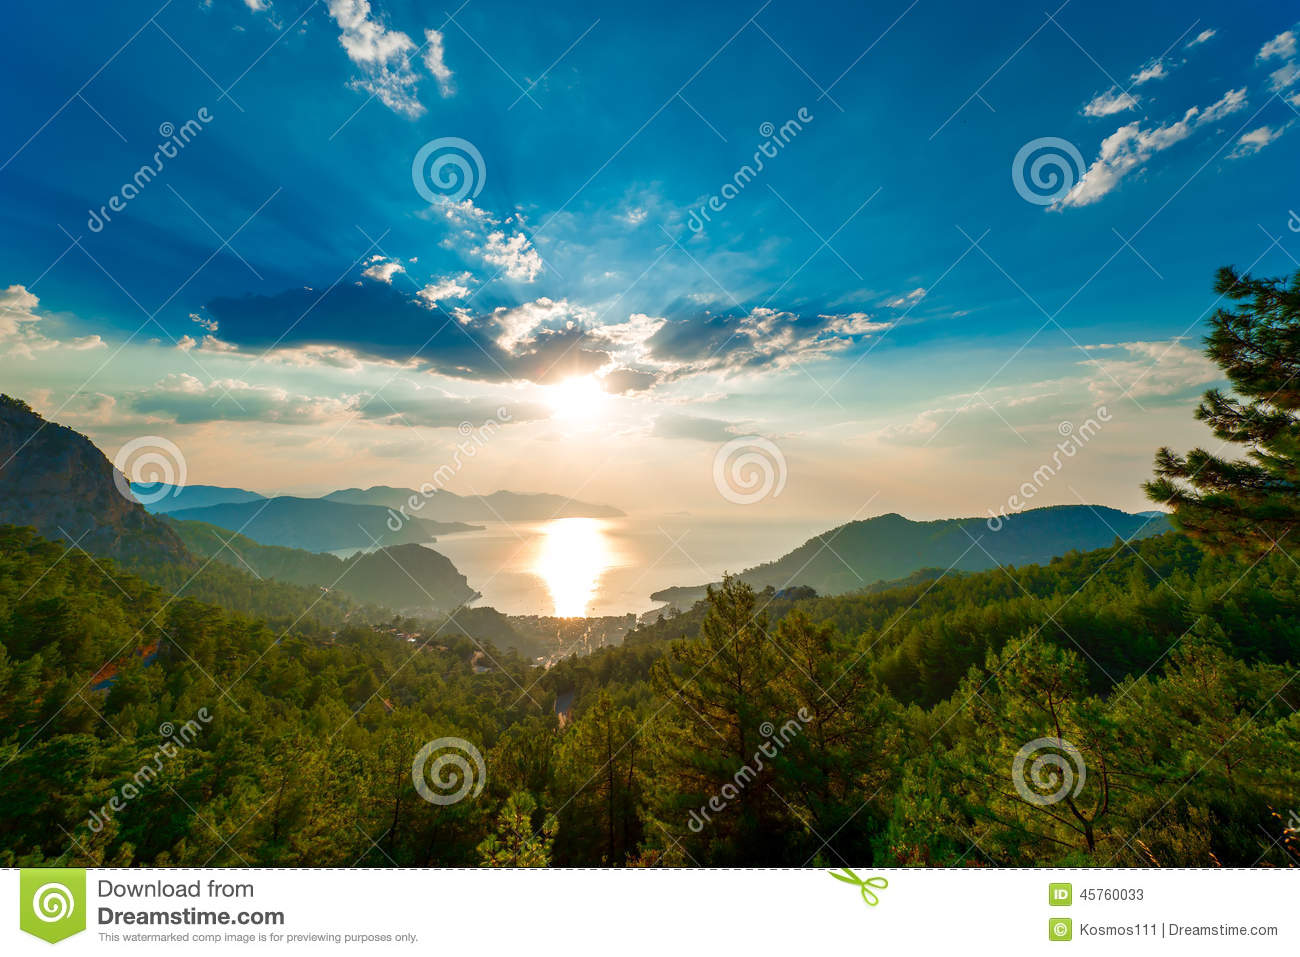 Pine trees in the mountains and the rising sun